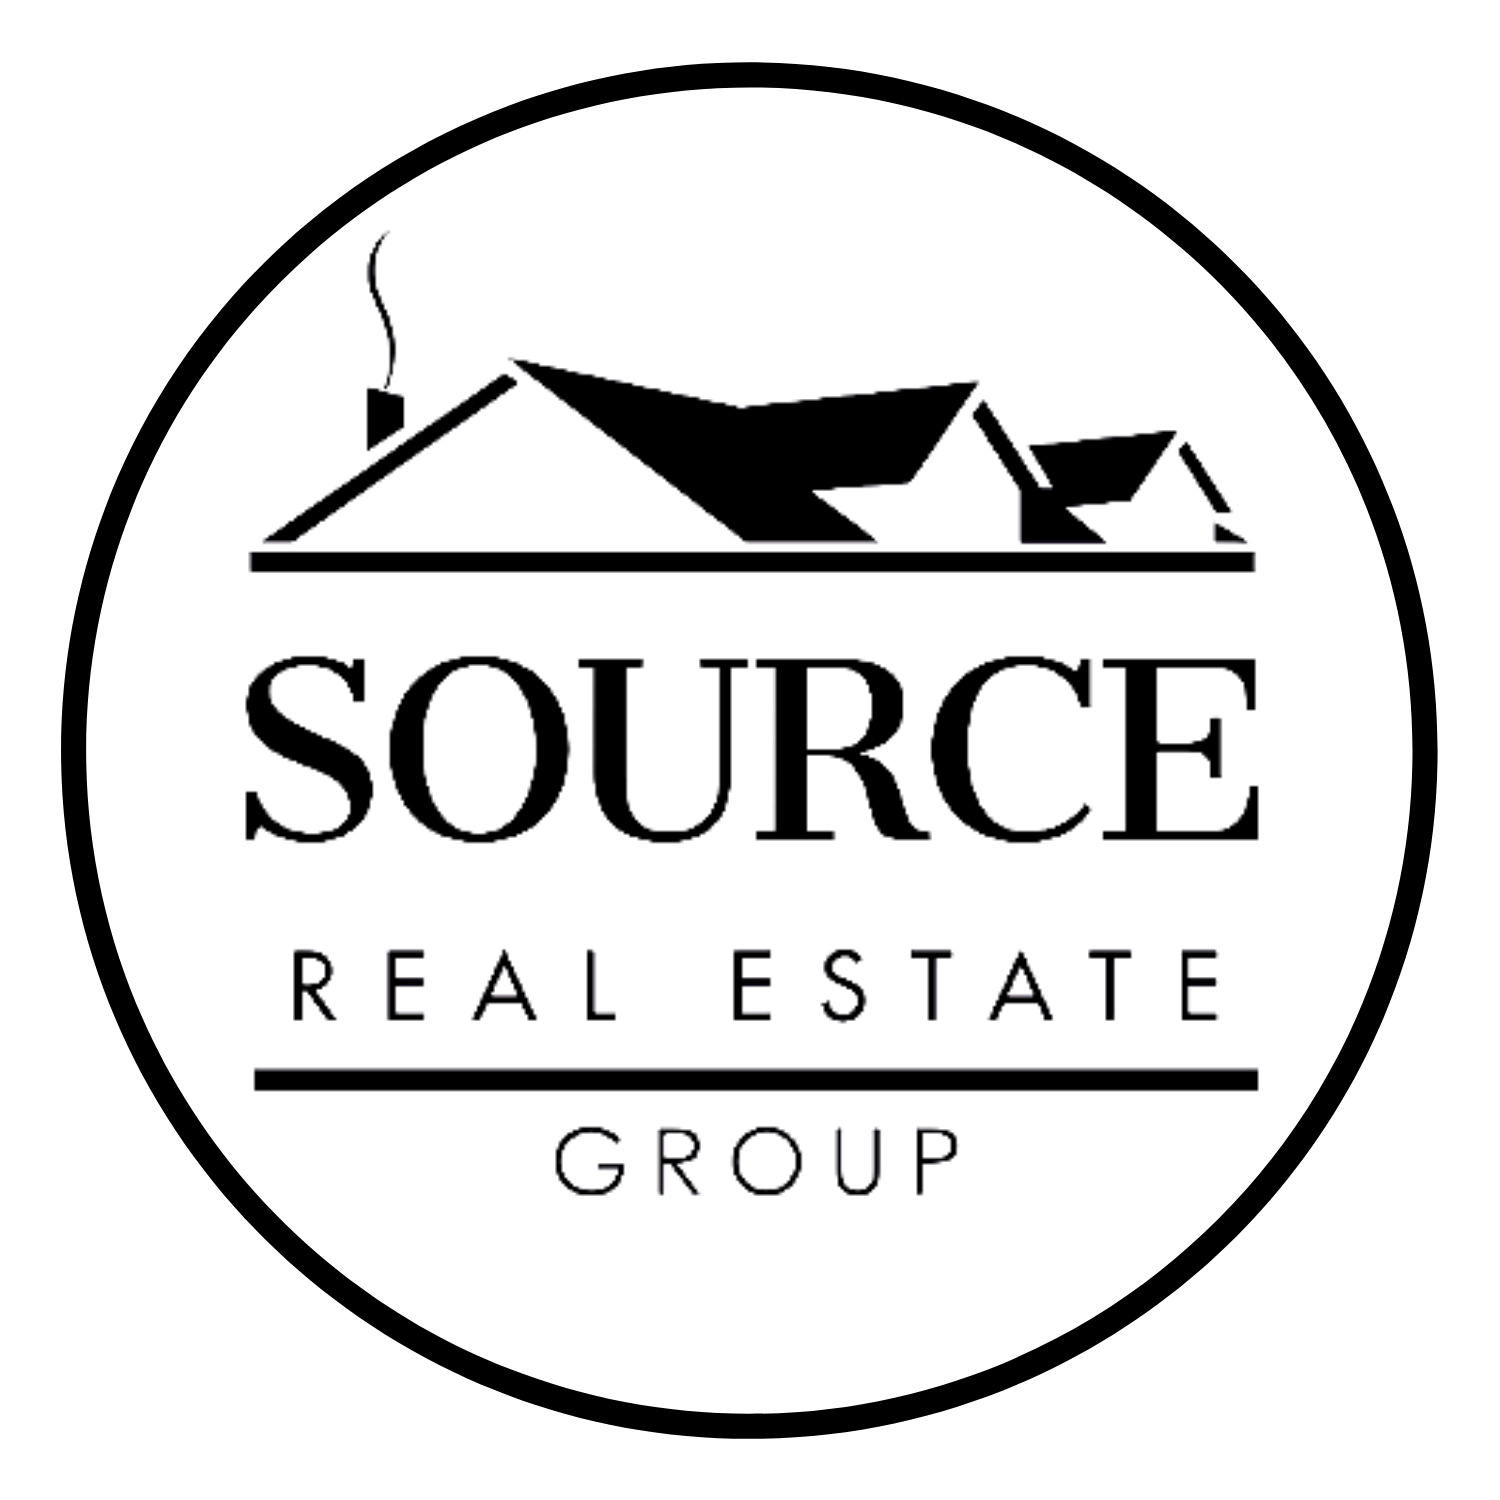 Source Real Estate Group